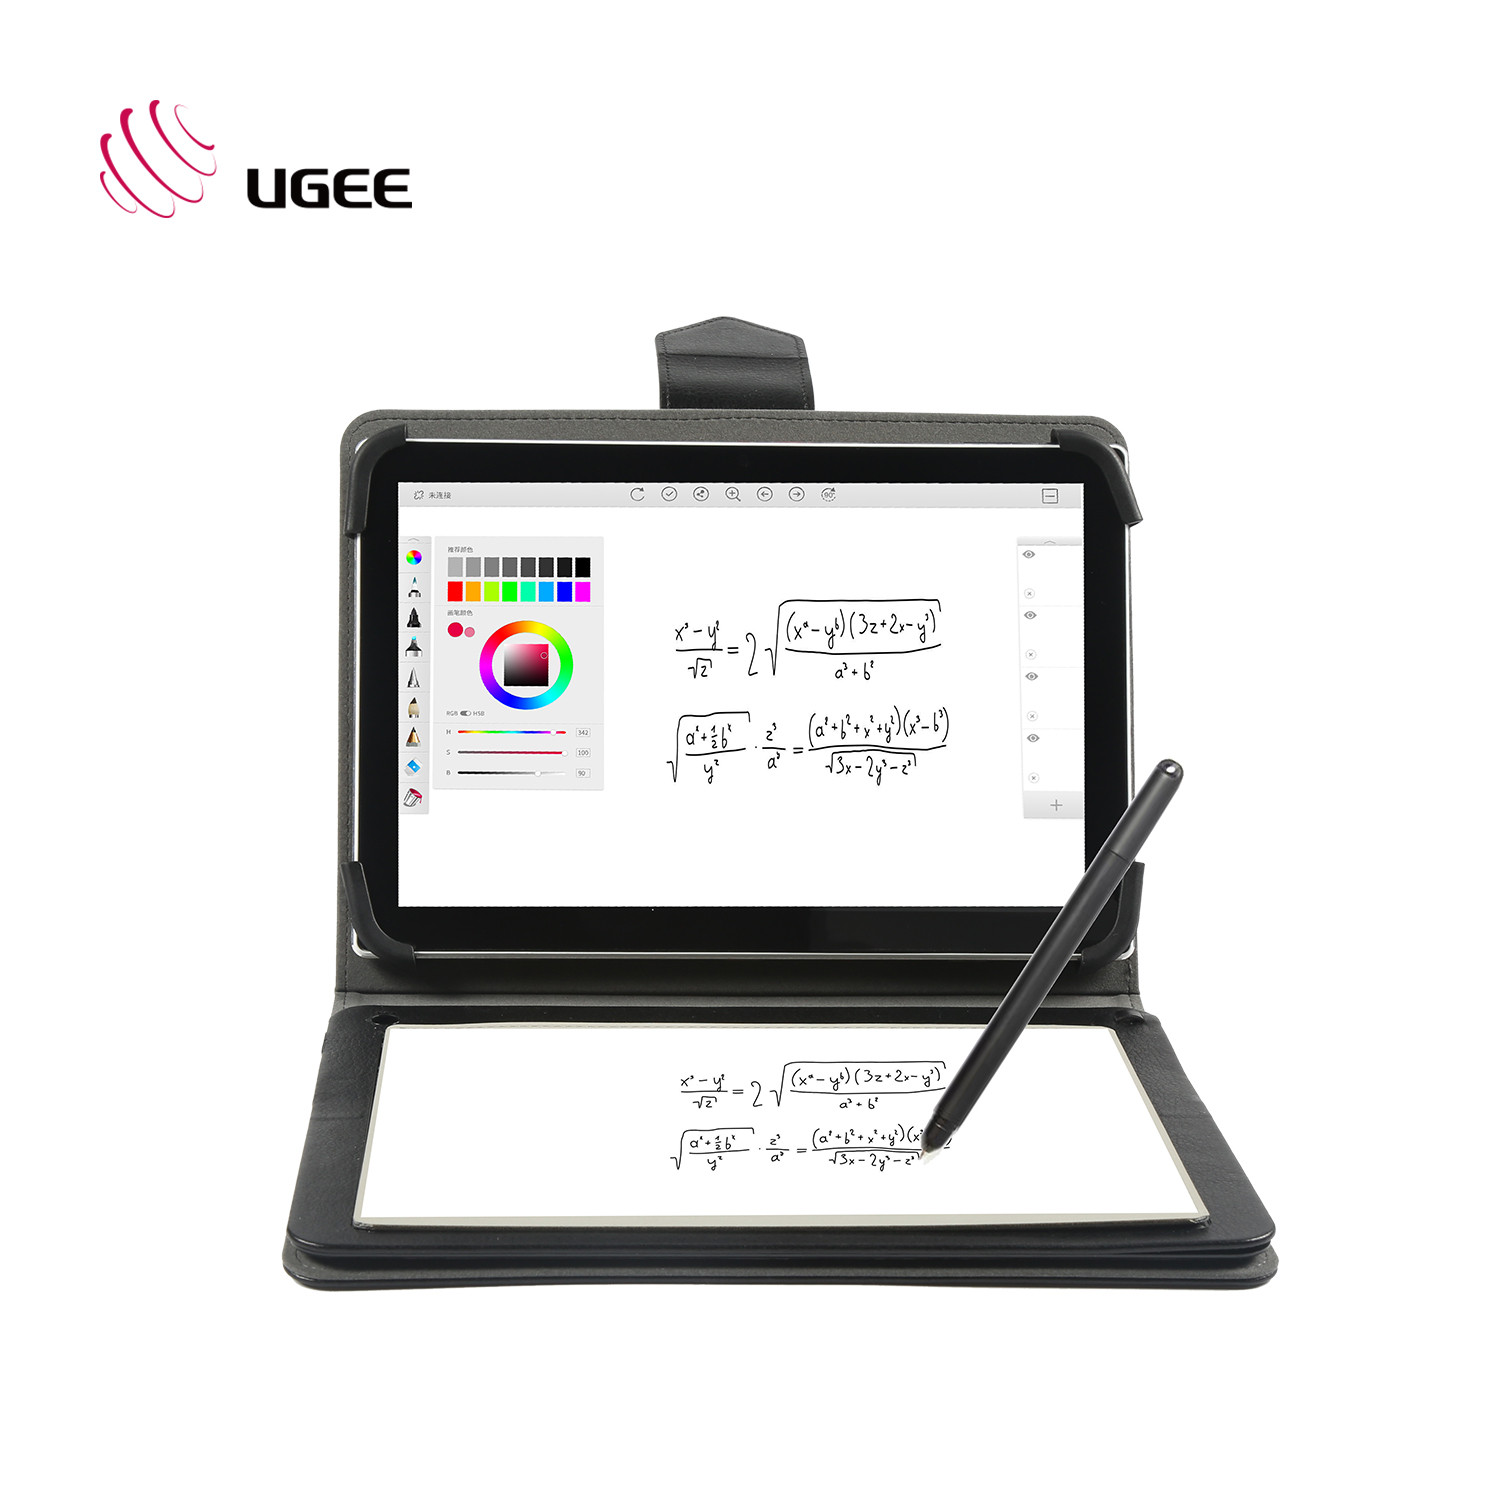 Ugee-Read Et05i Smart Writing Pad For Paperless Teaching Mode News On Ugee Technology